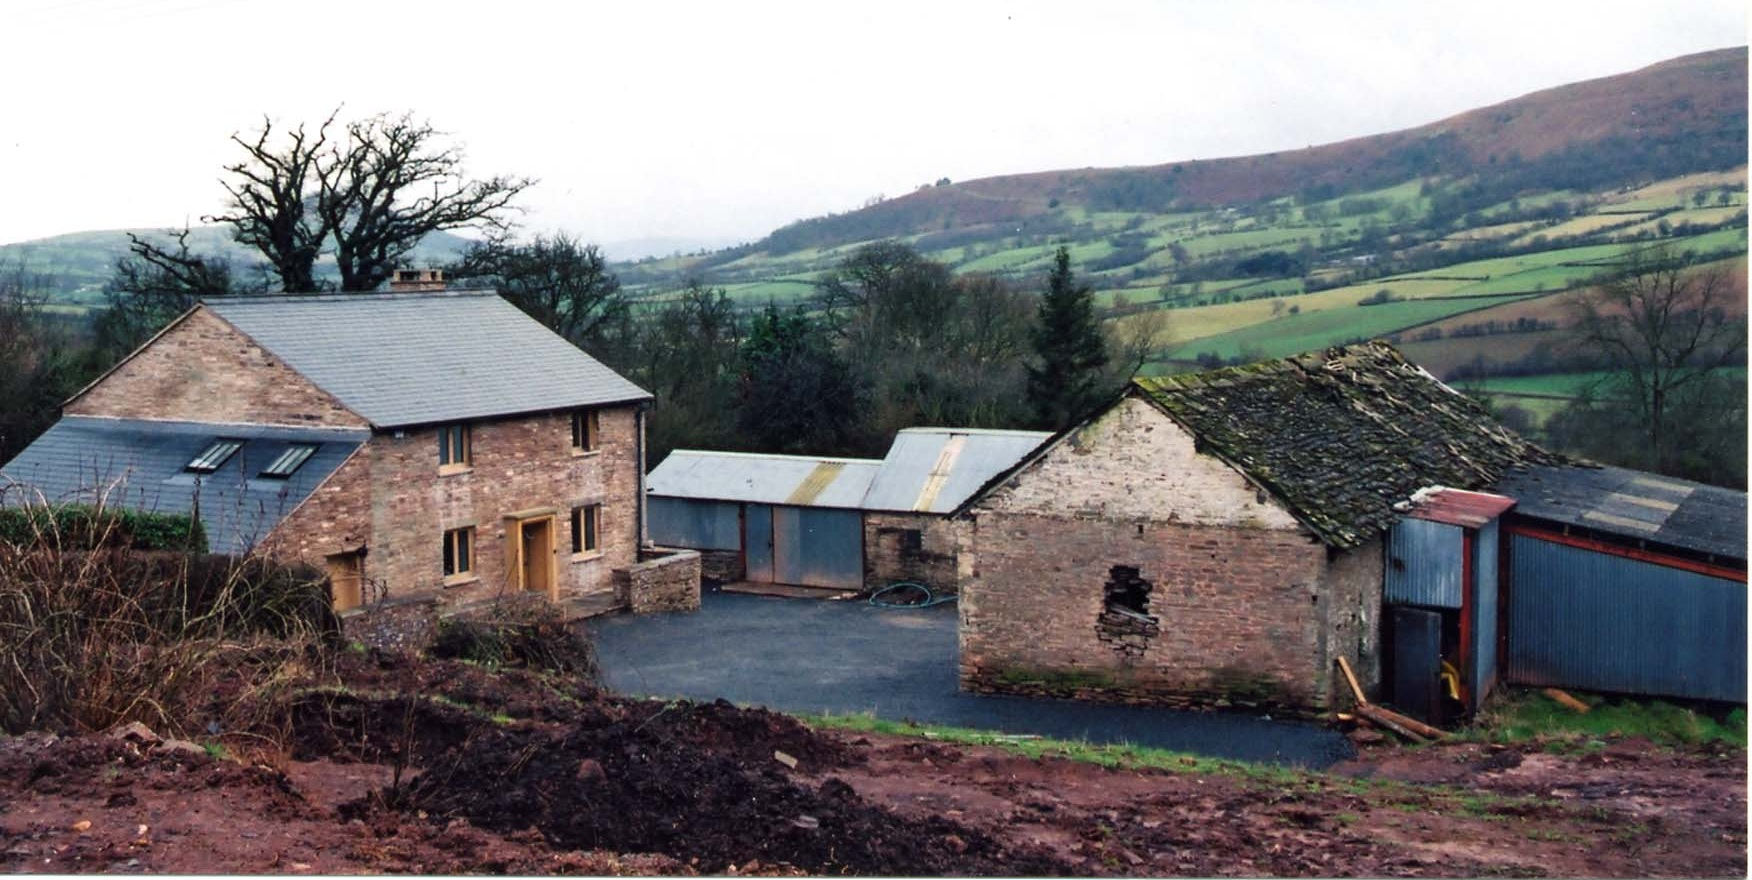 Site before the garden was started (2003)